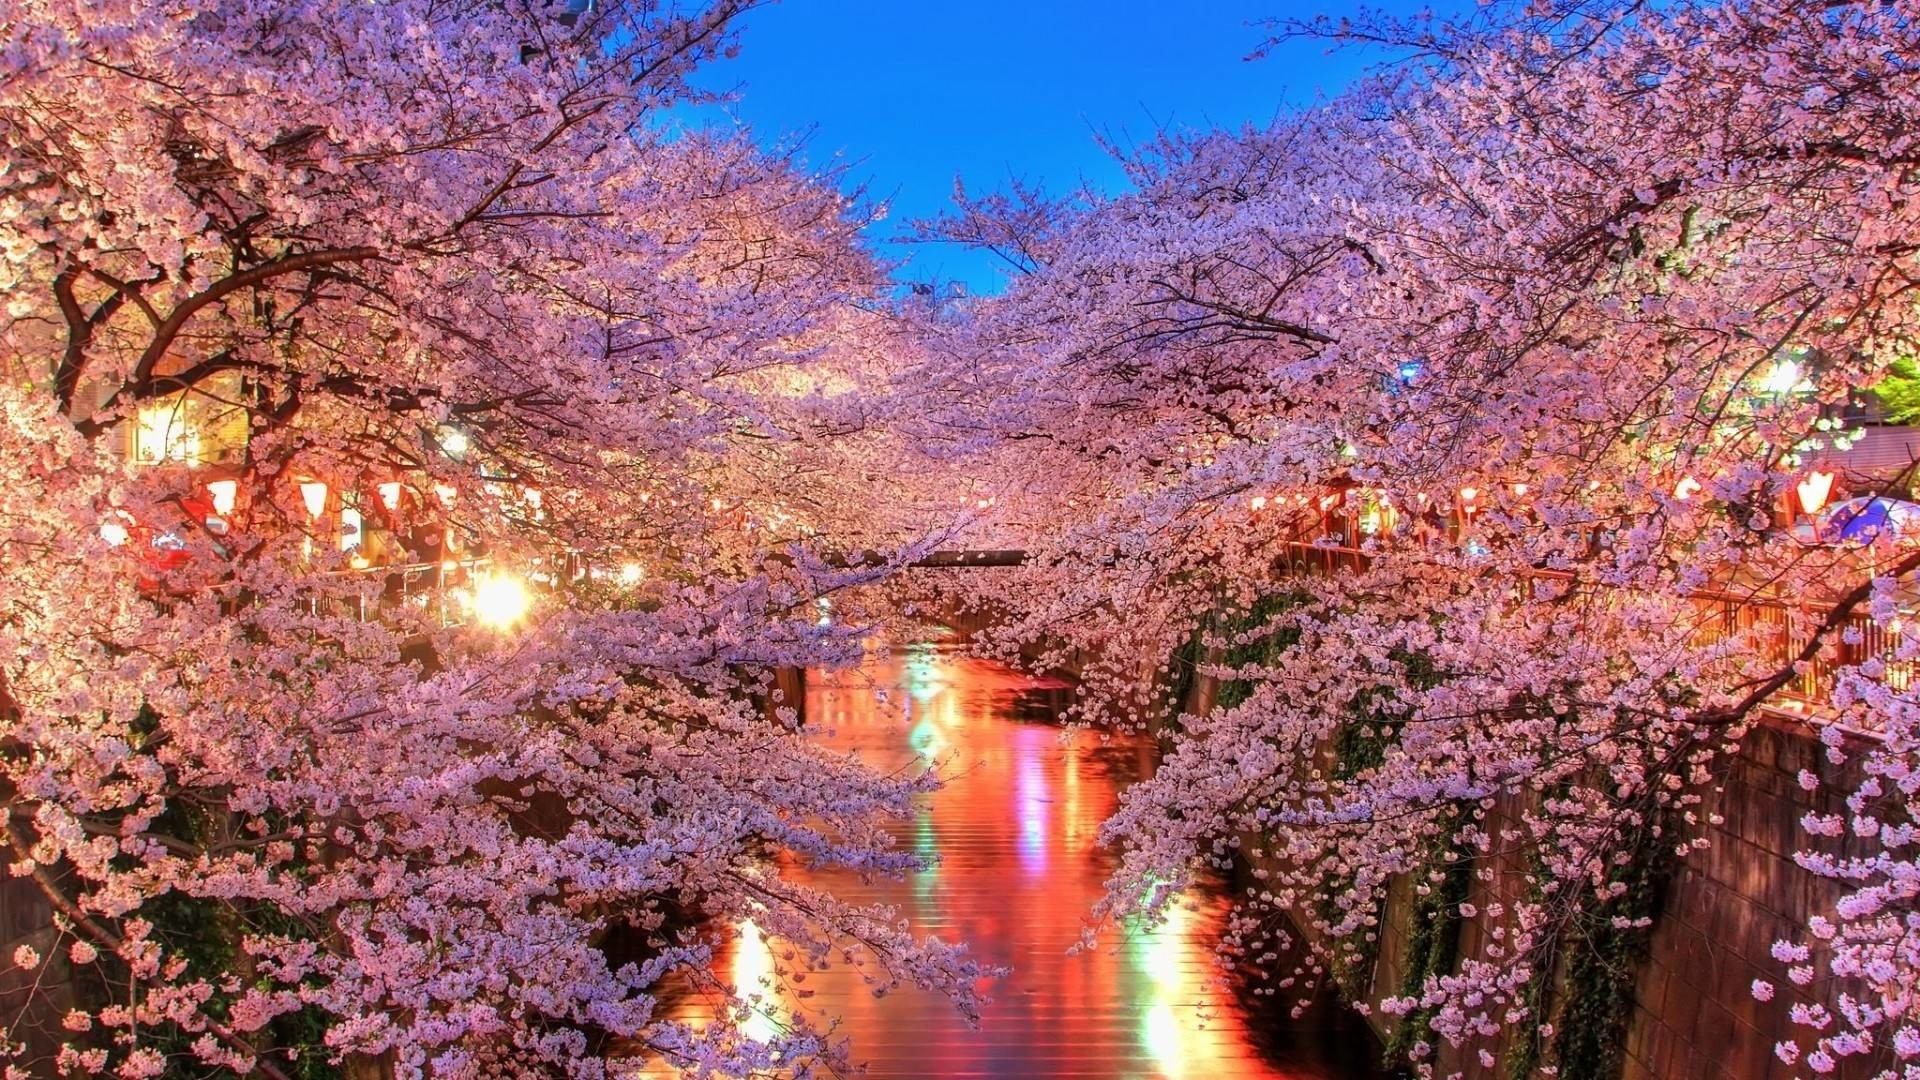 1920x1080 Free Cherry Blossoms City Lights Wallpapers, Free Cherry Blossoms .